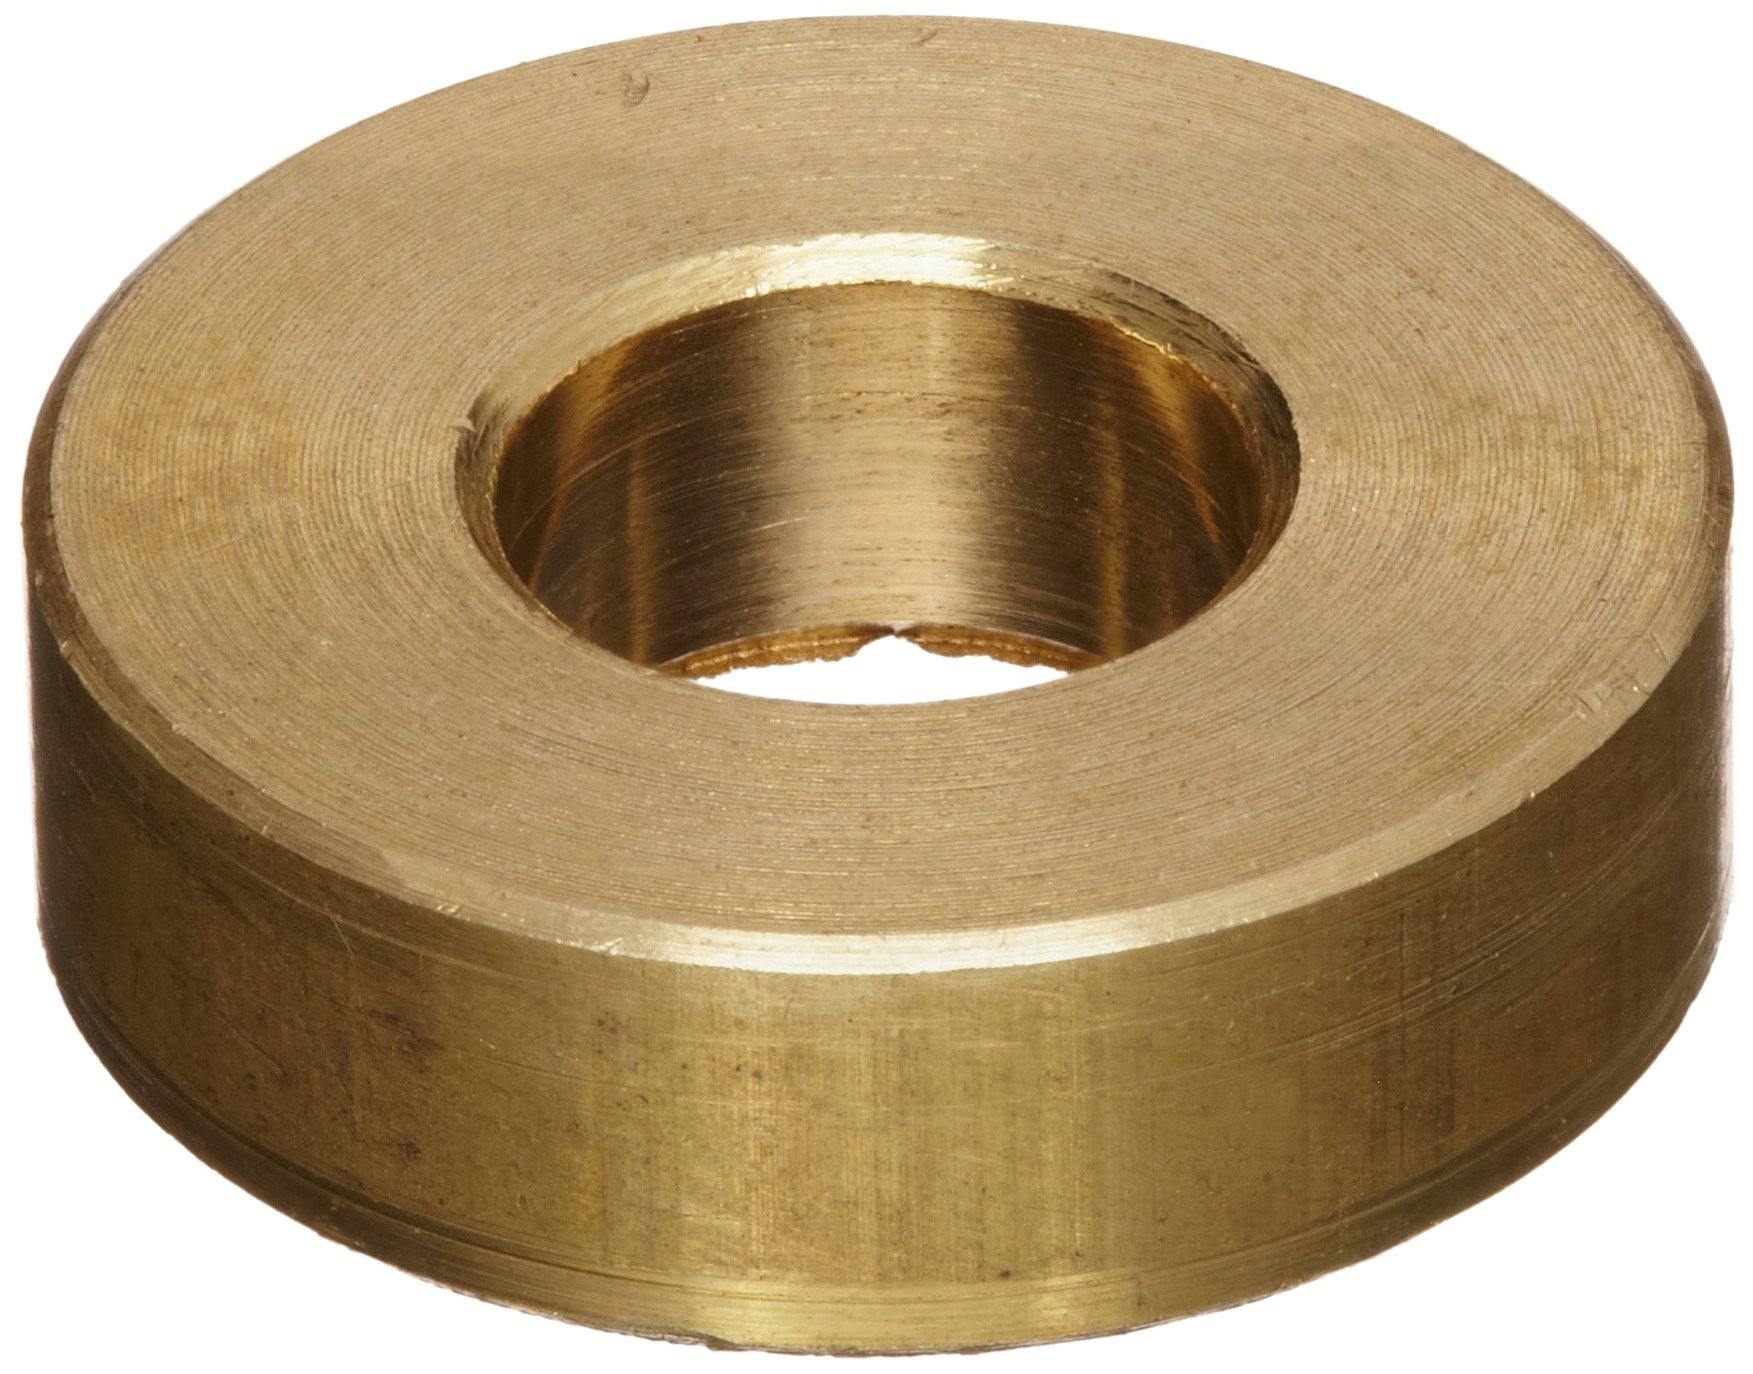 Brass Type B Flat Washer, Meets ANSI B18.22.1, 5/16'' Hole Size, 0.469'' ID, 1'' OD, 0.125'' Nominal Thickness, Made in US (Pack of 10)